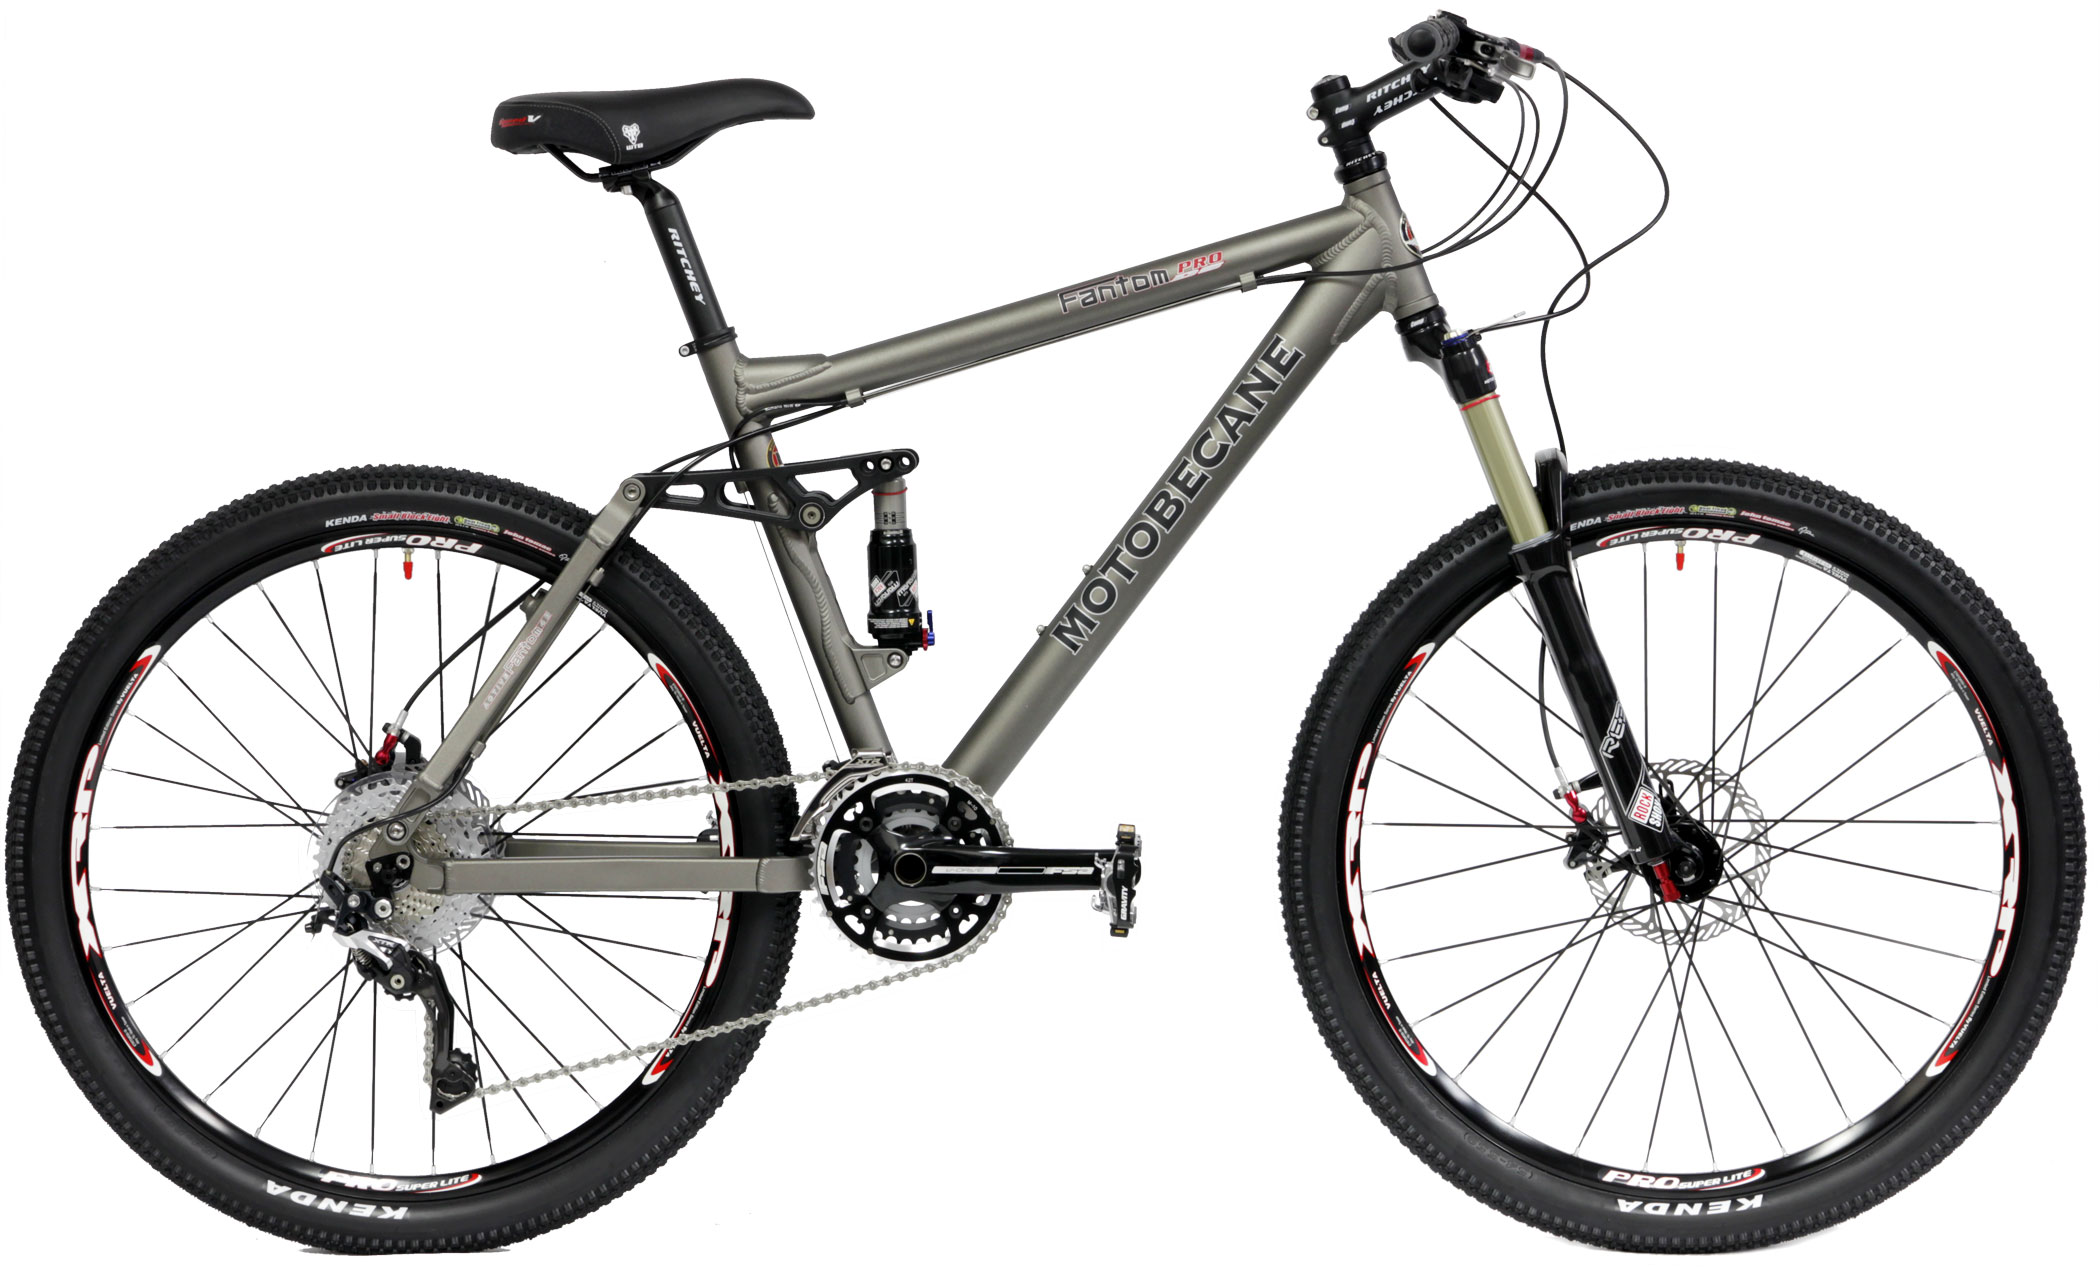 Save Up To 60 Off Shimano Xtr Dynasys Mountain Bikes